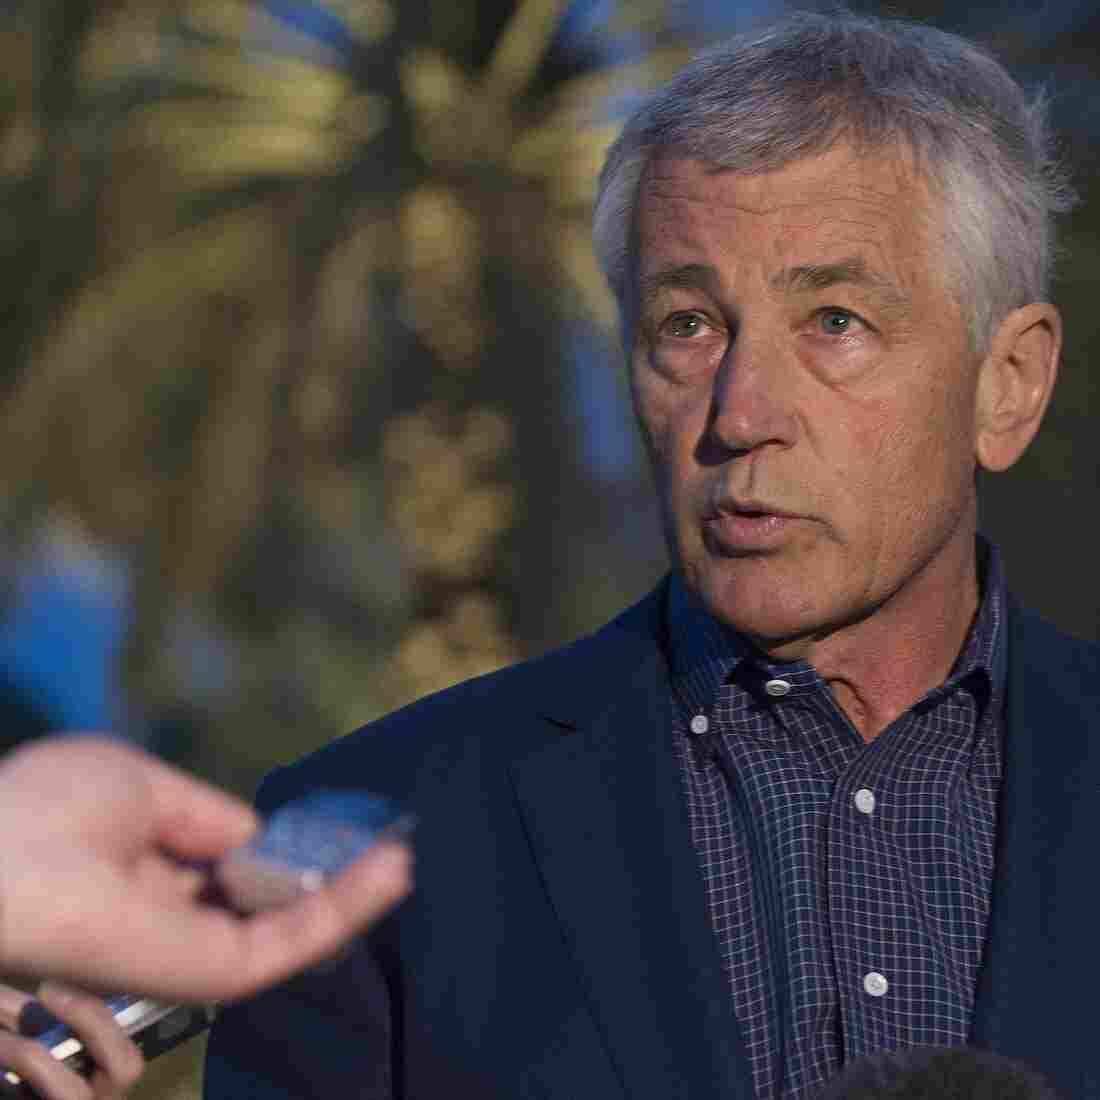 Secretary of Defense Chuck Hagel speaks with reporters on Thursday in the United Arab Emirates after reading a statement on chemical weapon use.